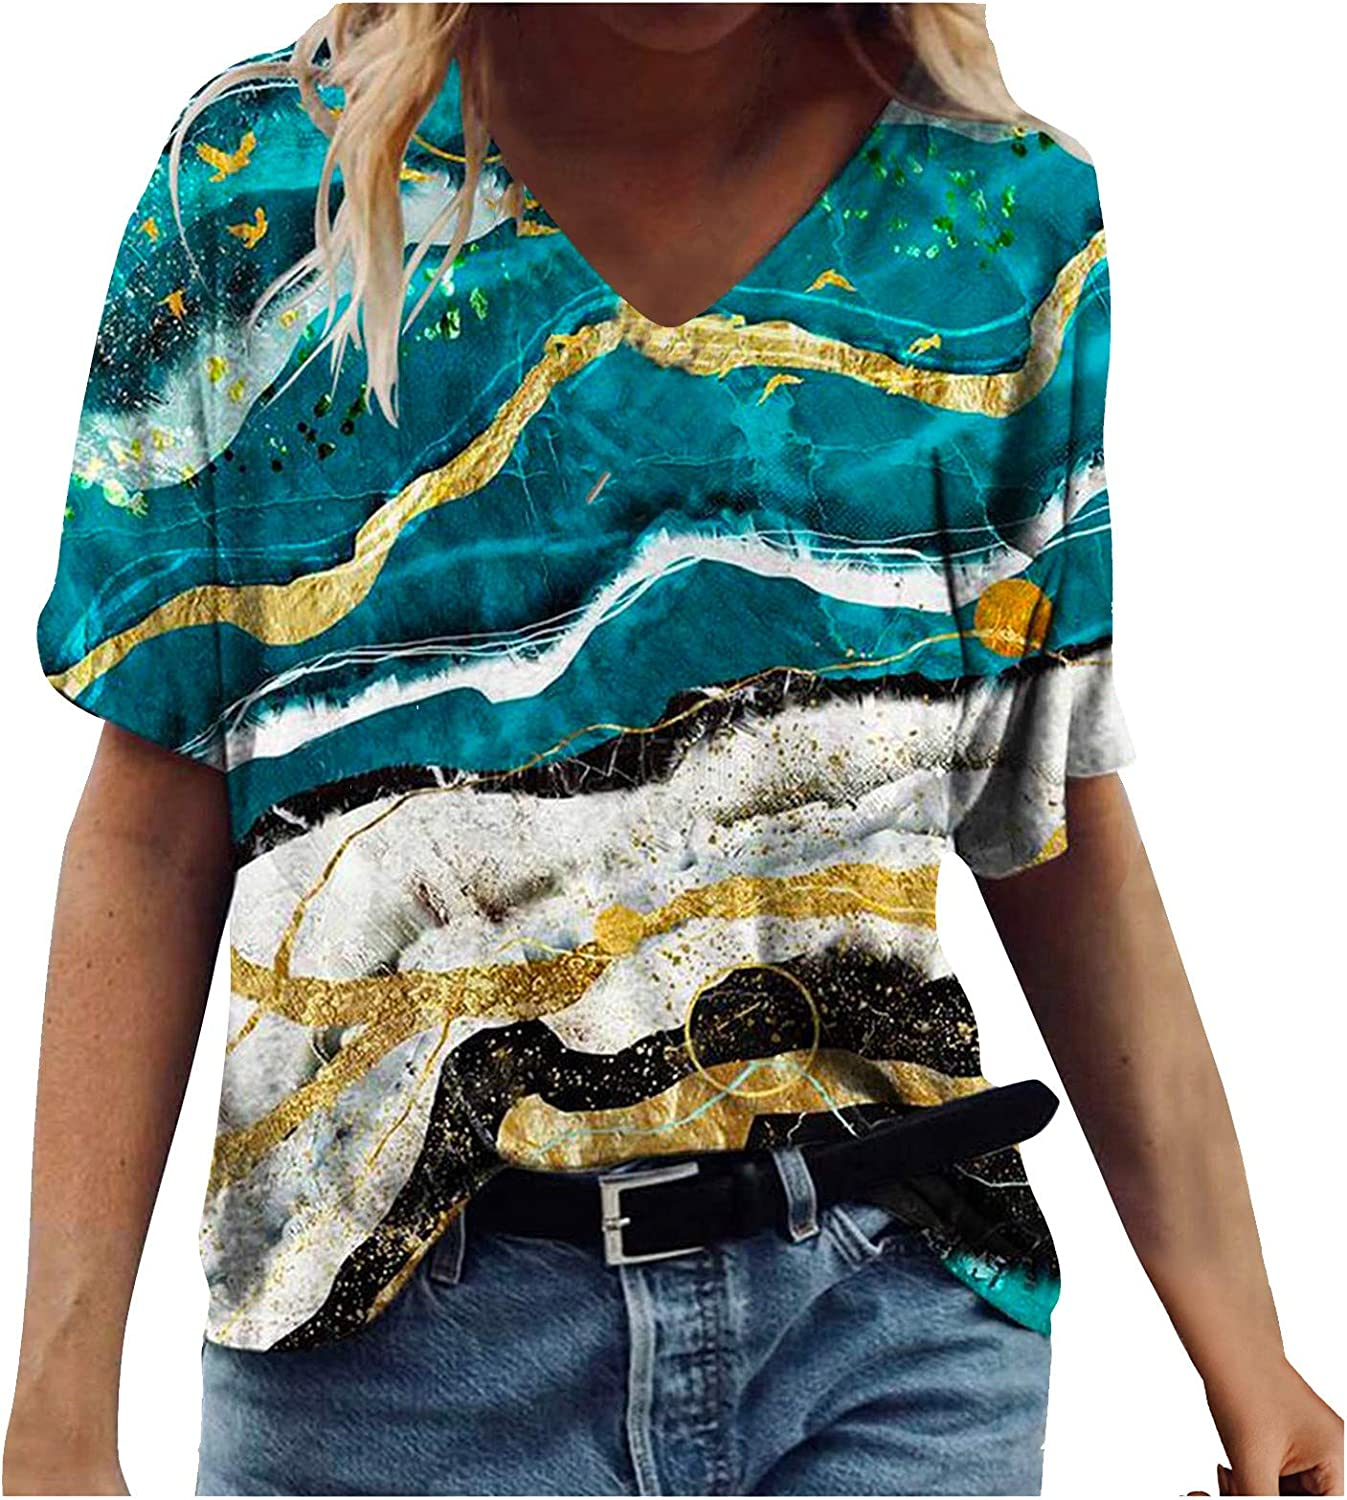 FABIURT Summer Tops for Women Short Sleeve Tunic Tops V Neck Gardient Floral Printed Tee Shirt Casual Loose Blouses Tops